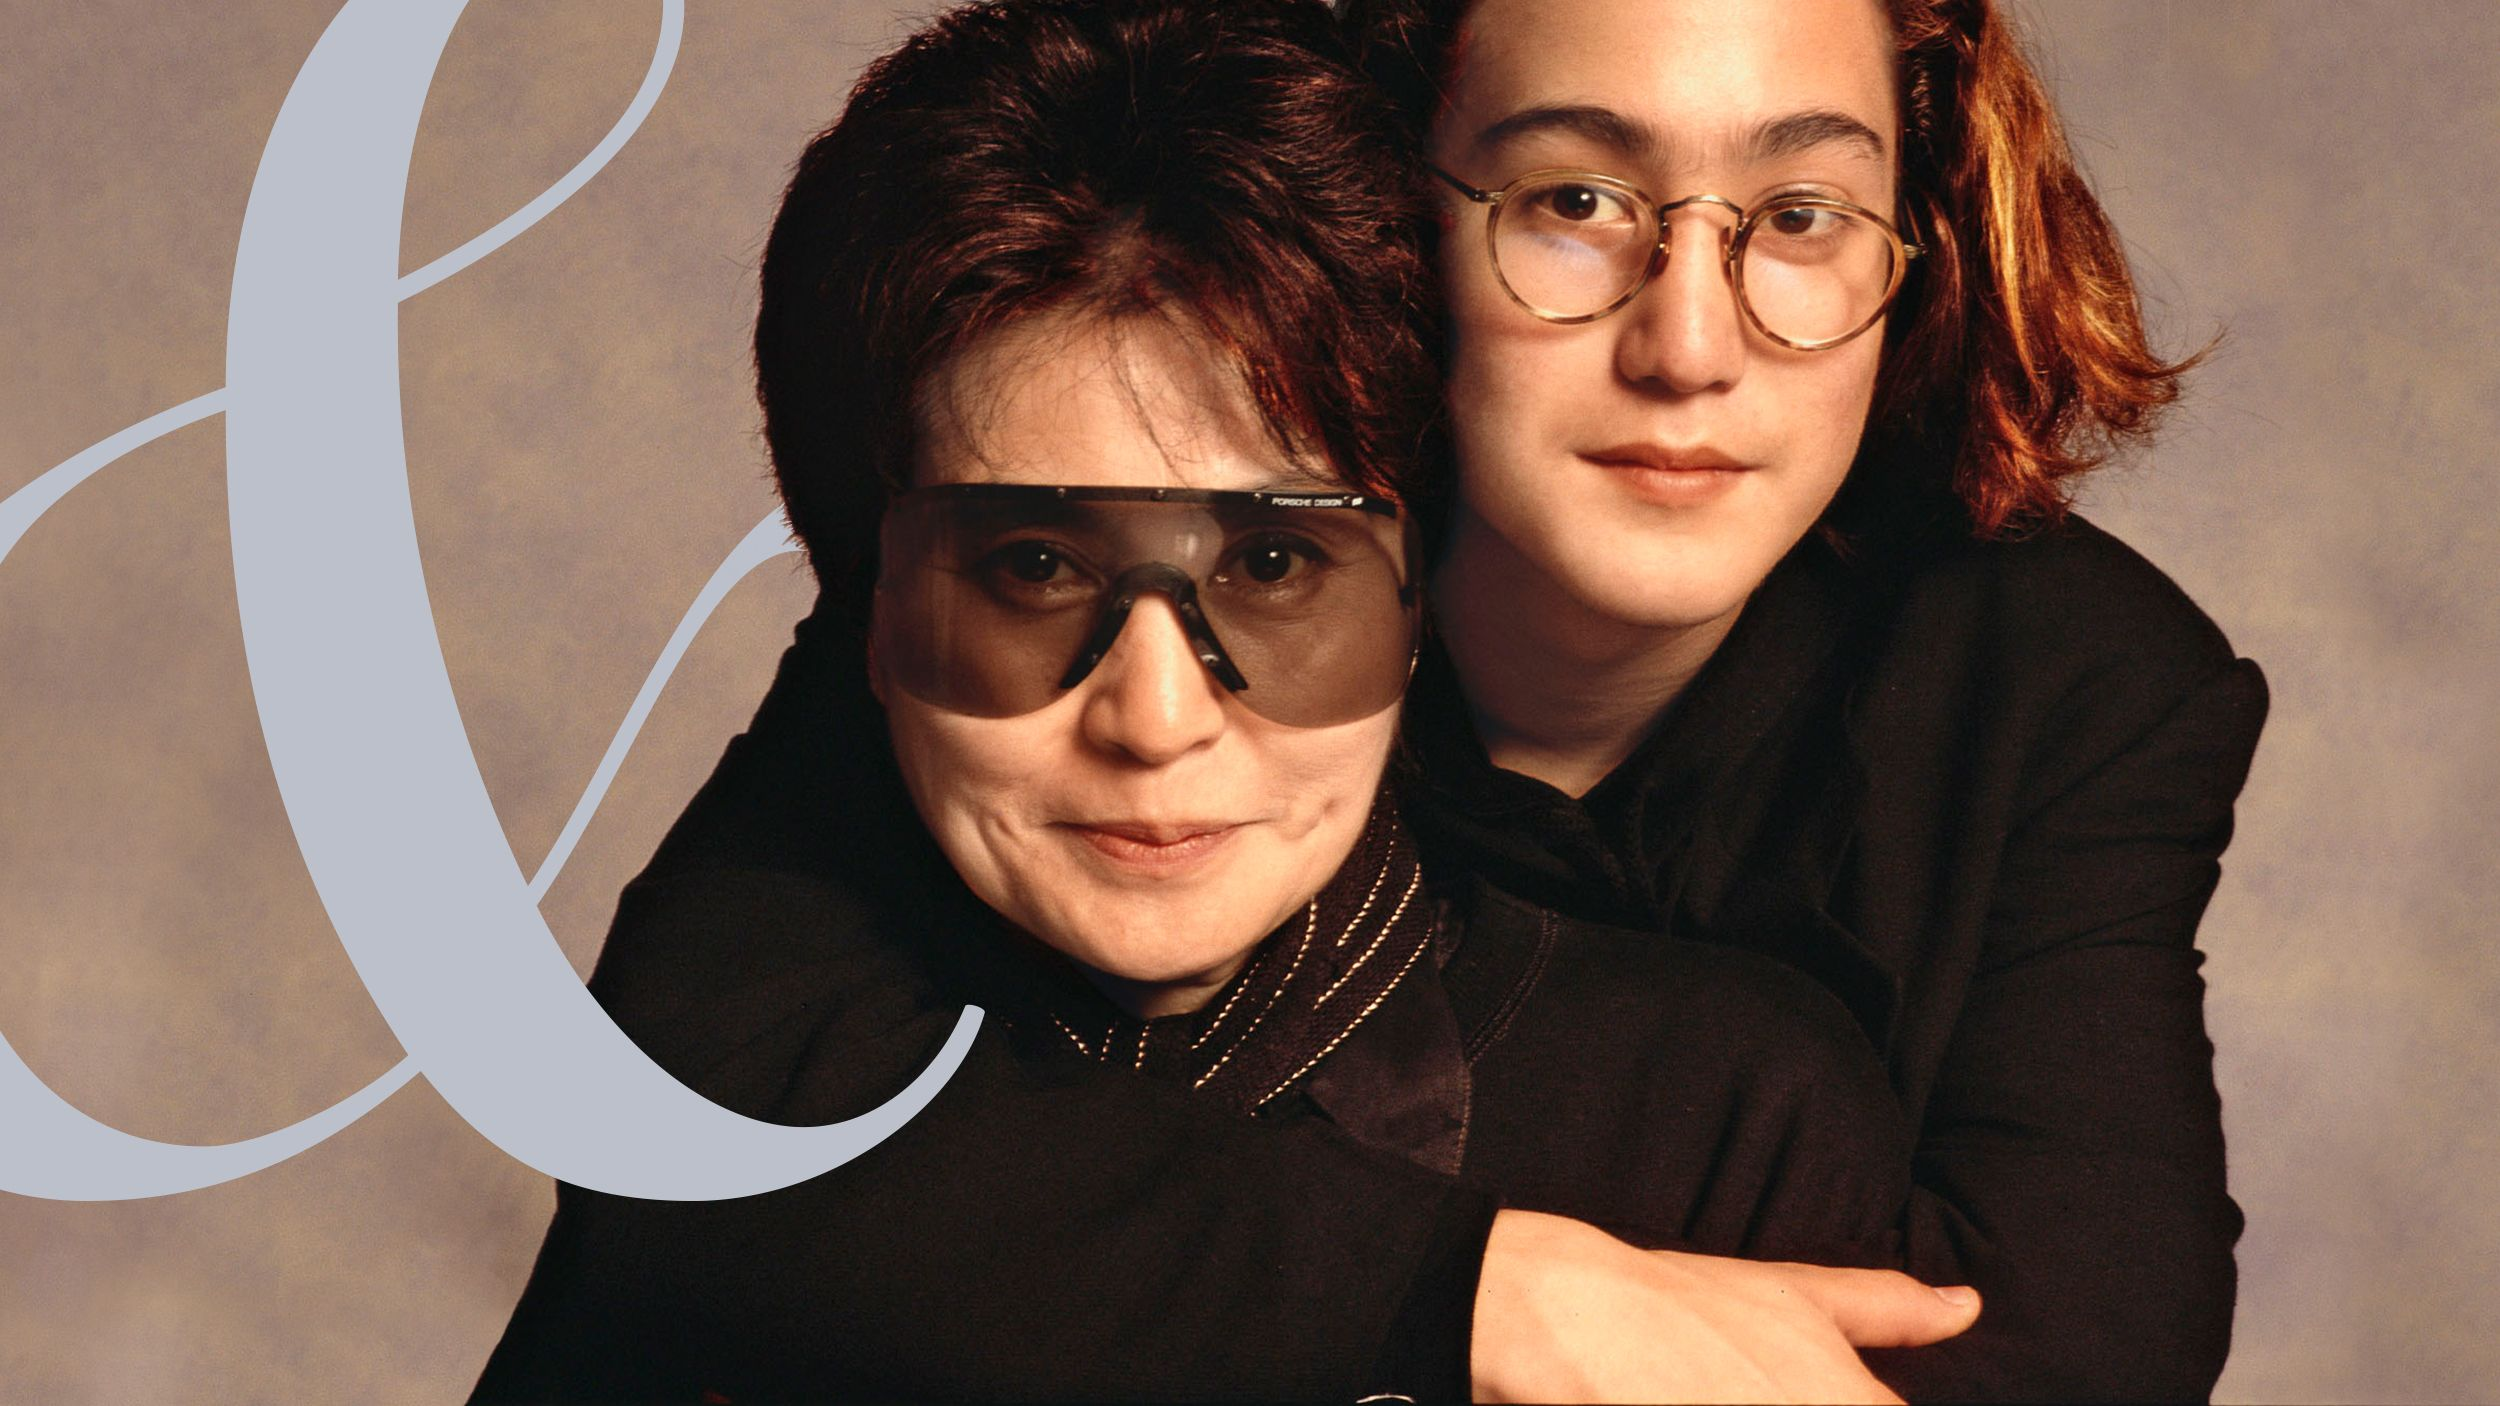 Yoko Ono And Sean Lennon Interview Yoko Ono Poses With Sean Lennon